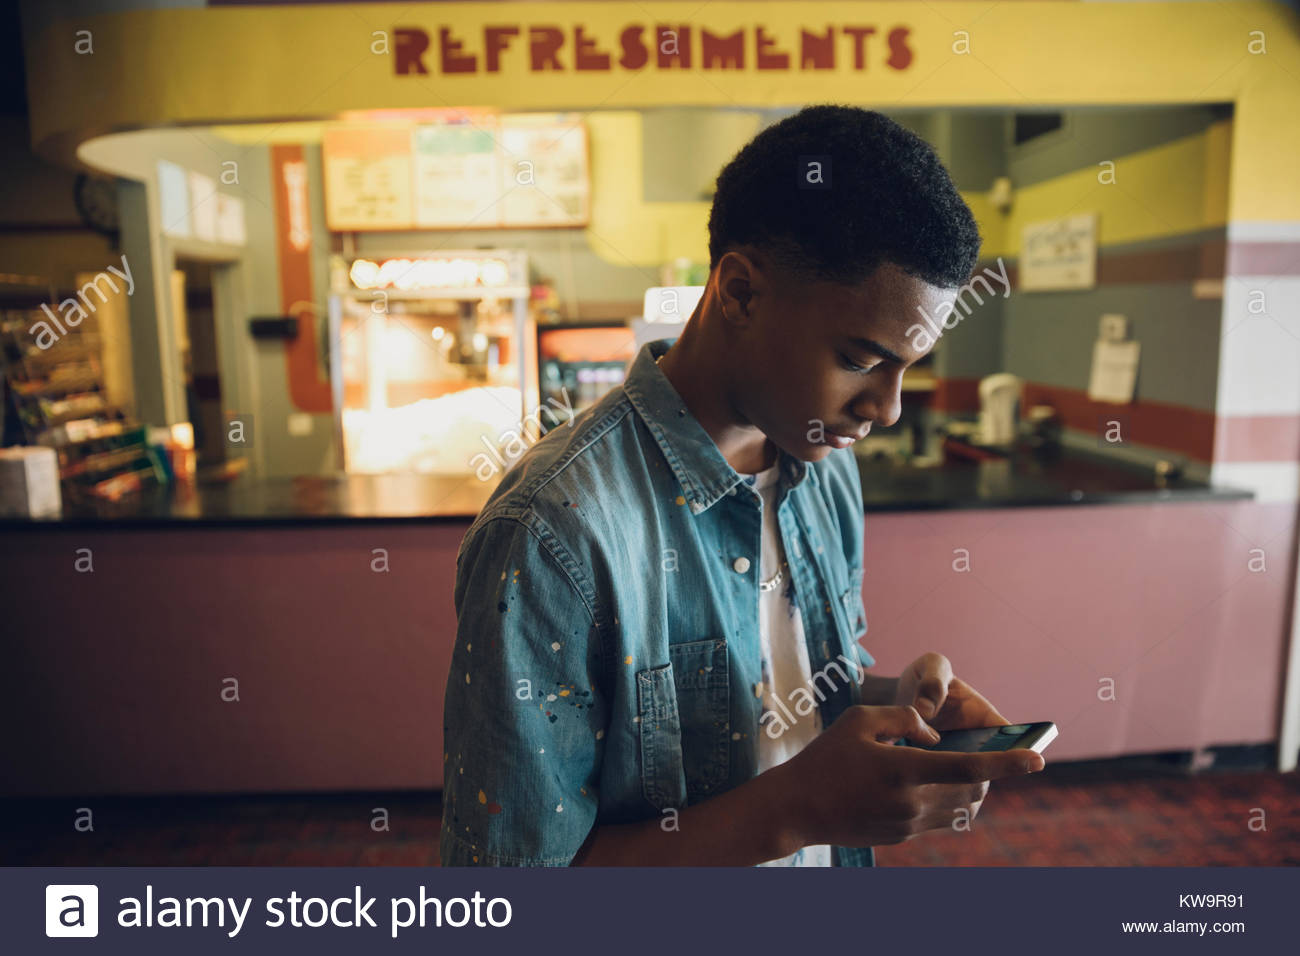 African American tween boy texting with smart phone in movie theater - Stock Image